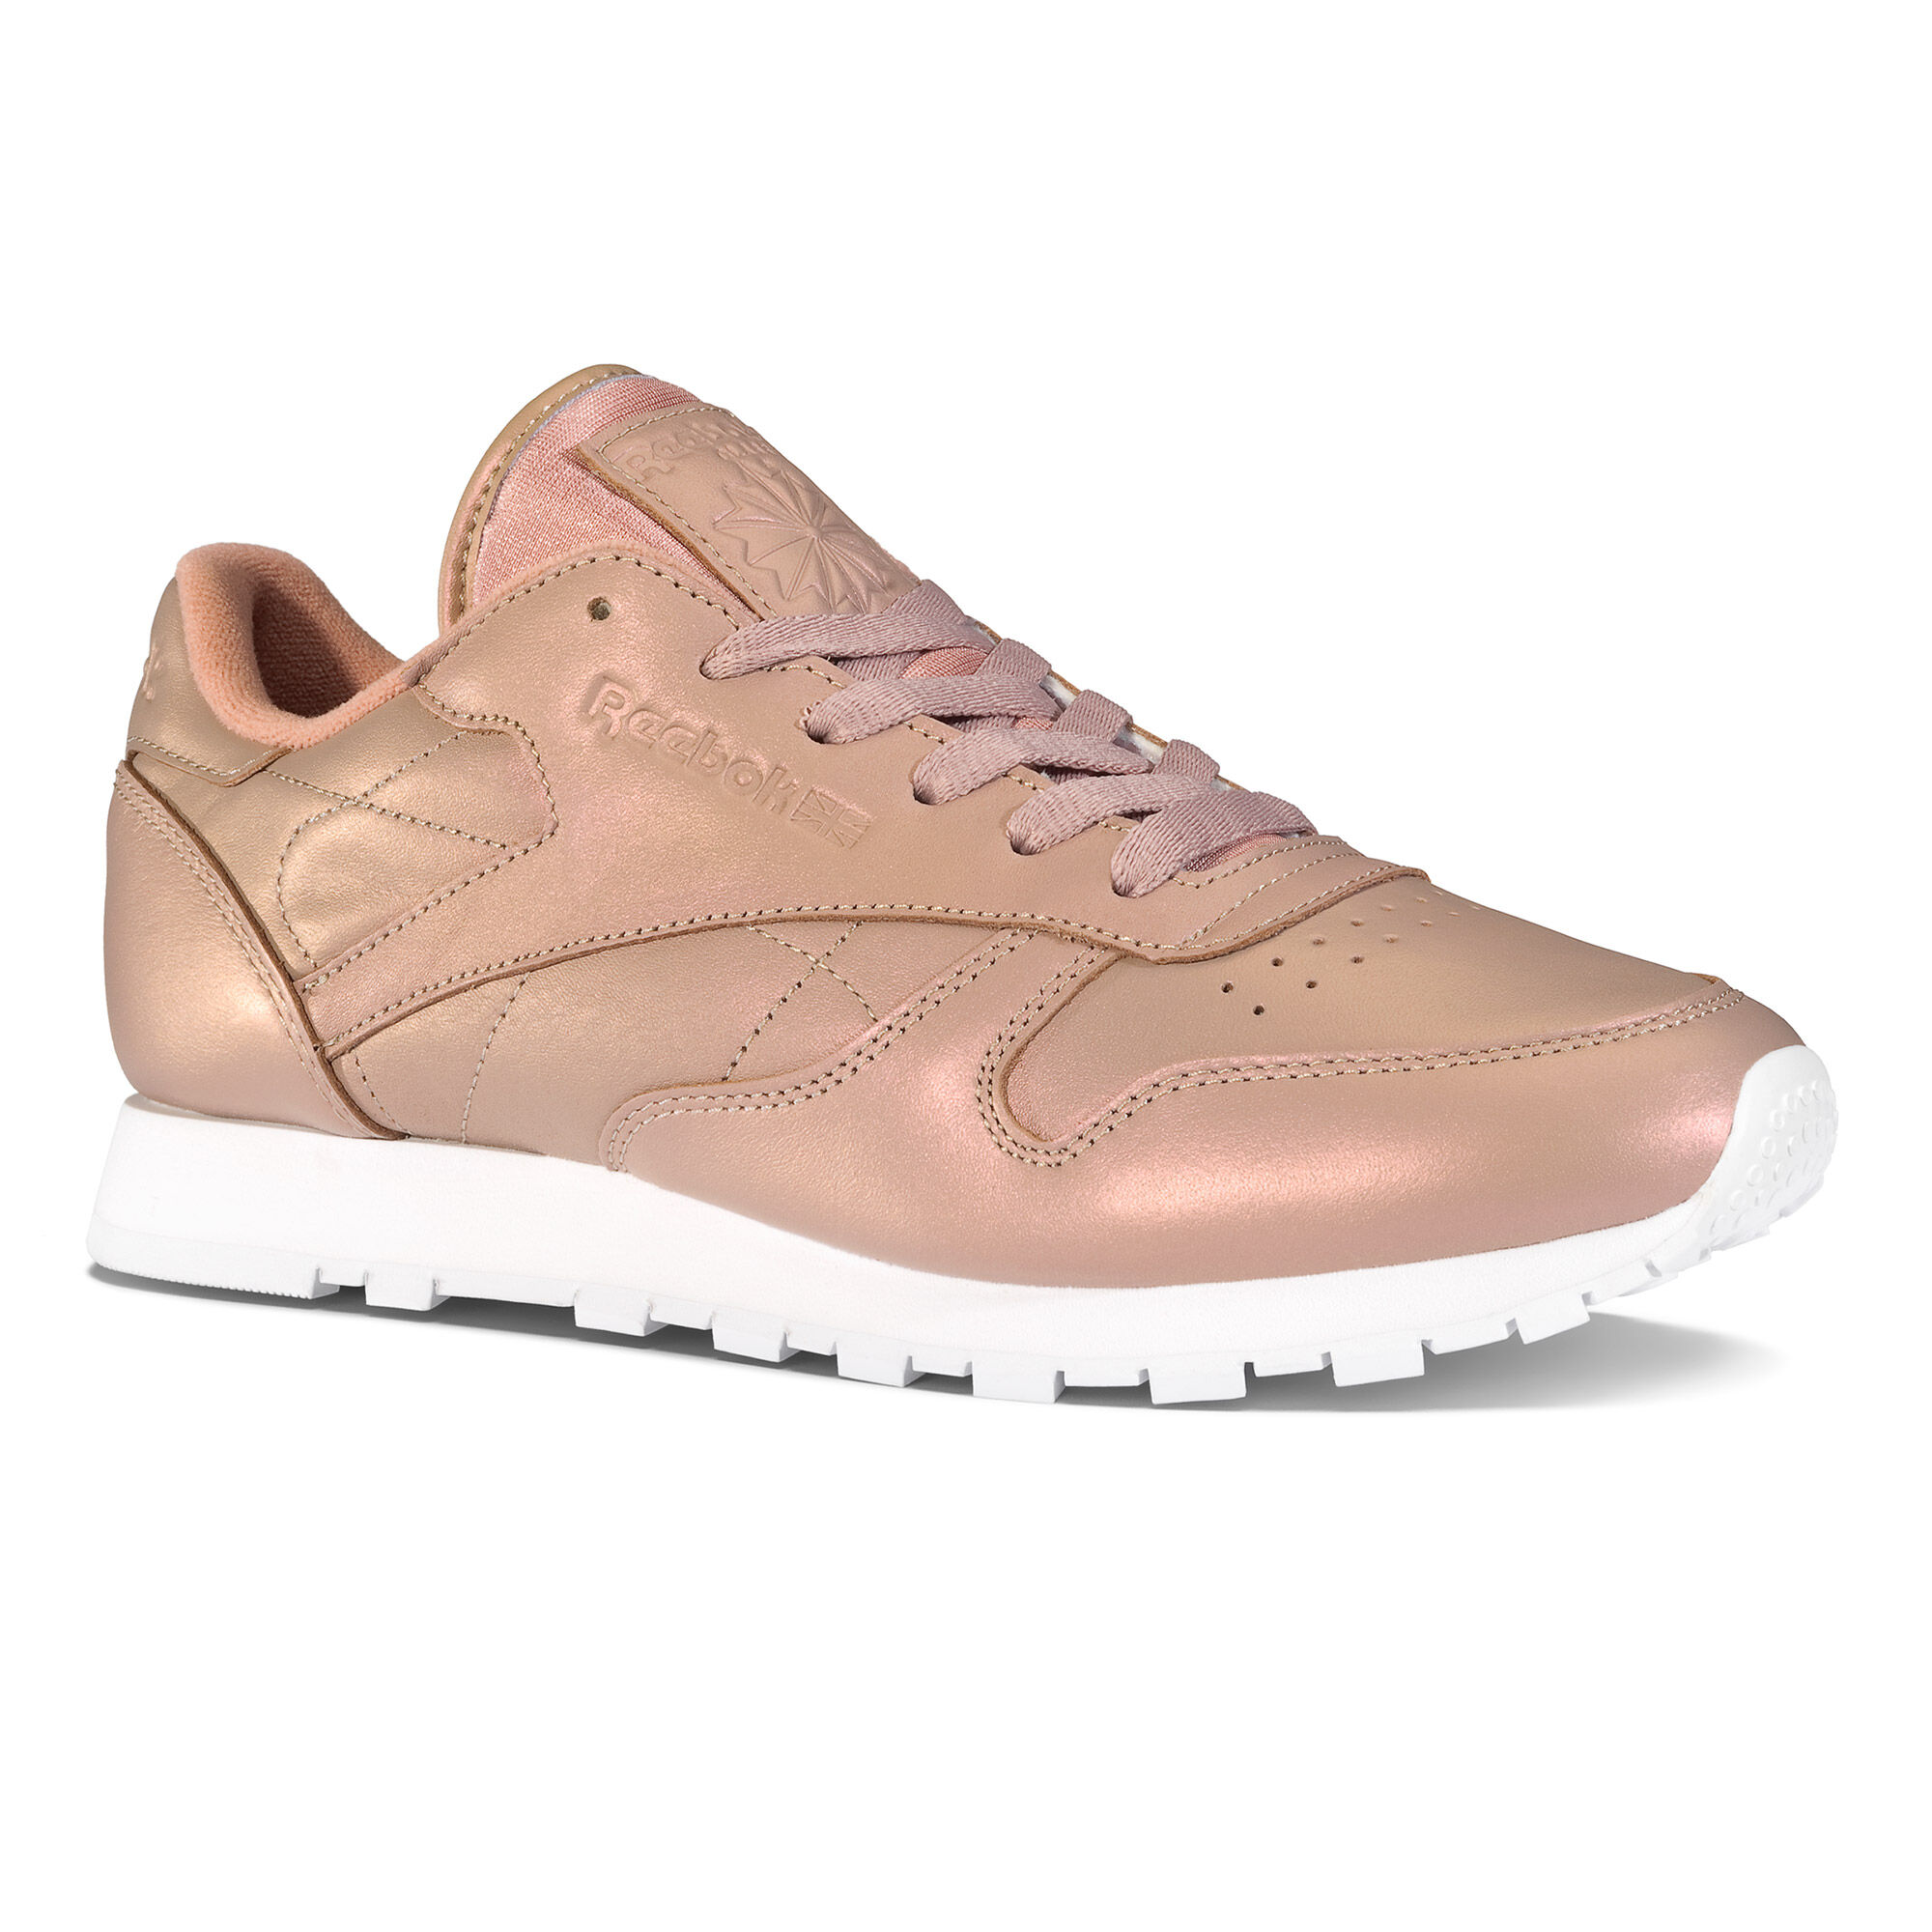 Reebok , Classic Leather Pearlized Rose Gold/White BD4308